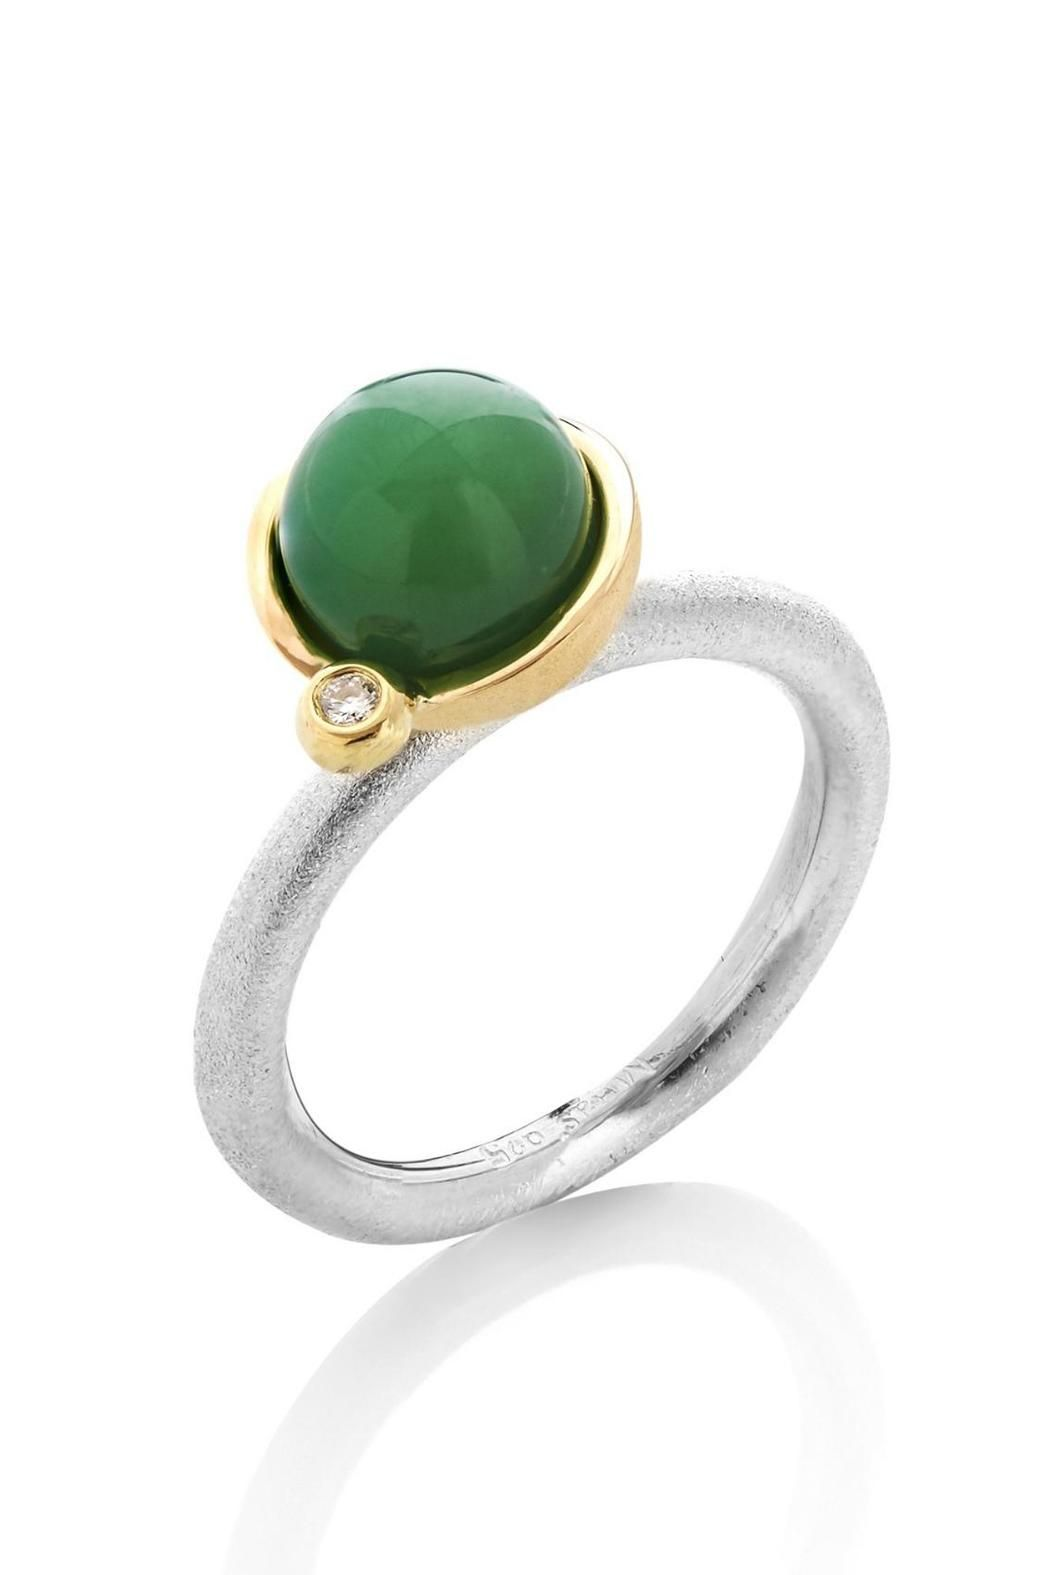 This ring is a stunning combination of silver, 18k gold and the radiant green chrysoprase. On the side, we put a small diamond as a lovely final detail. You can wear this ring with other stacking rings or with a plain band or maybe just alone! The chrysoprase is 9 mm round and it is a 0,02 ct tw/vvs diamond.   Stacking Ring with Chrysopras by Milas Jewellery. Accessories - Jewelry - Rings Copenhagen, Denmark